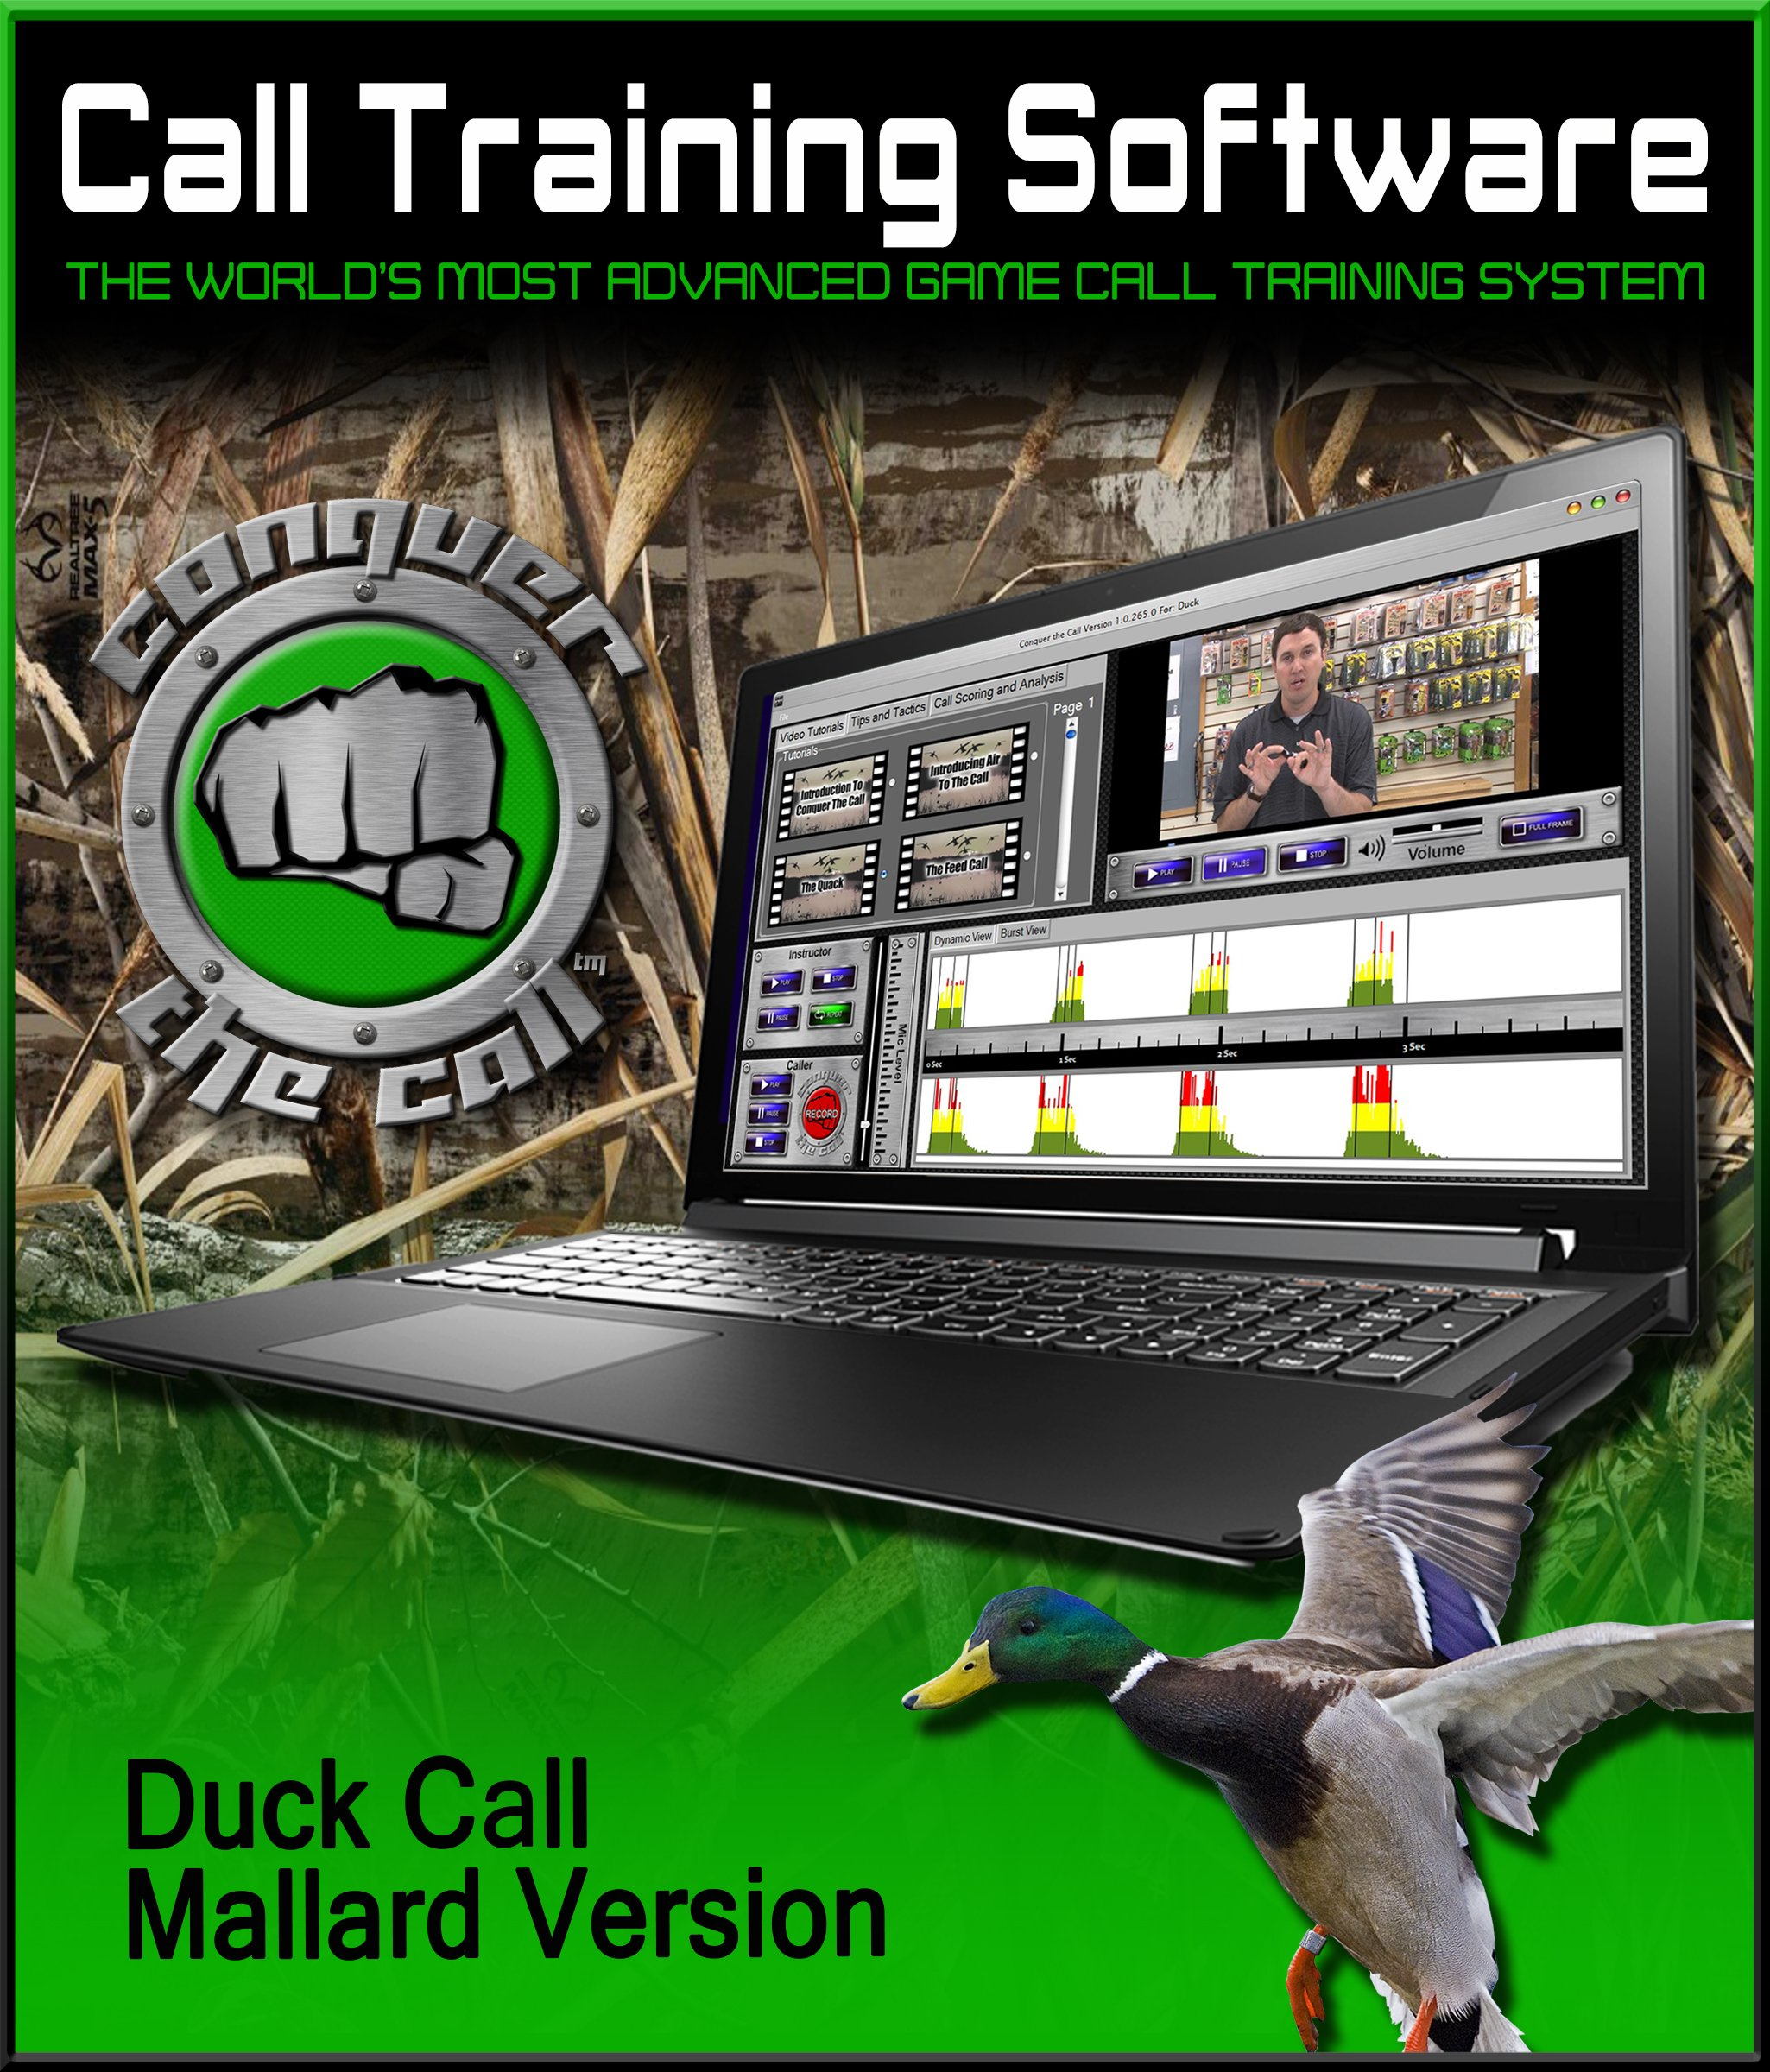 Conquer The Call Duck Call Interactive Software by DYNAMIC OUTDOOR CONCEPTS (Image #1)